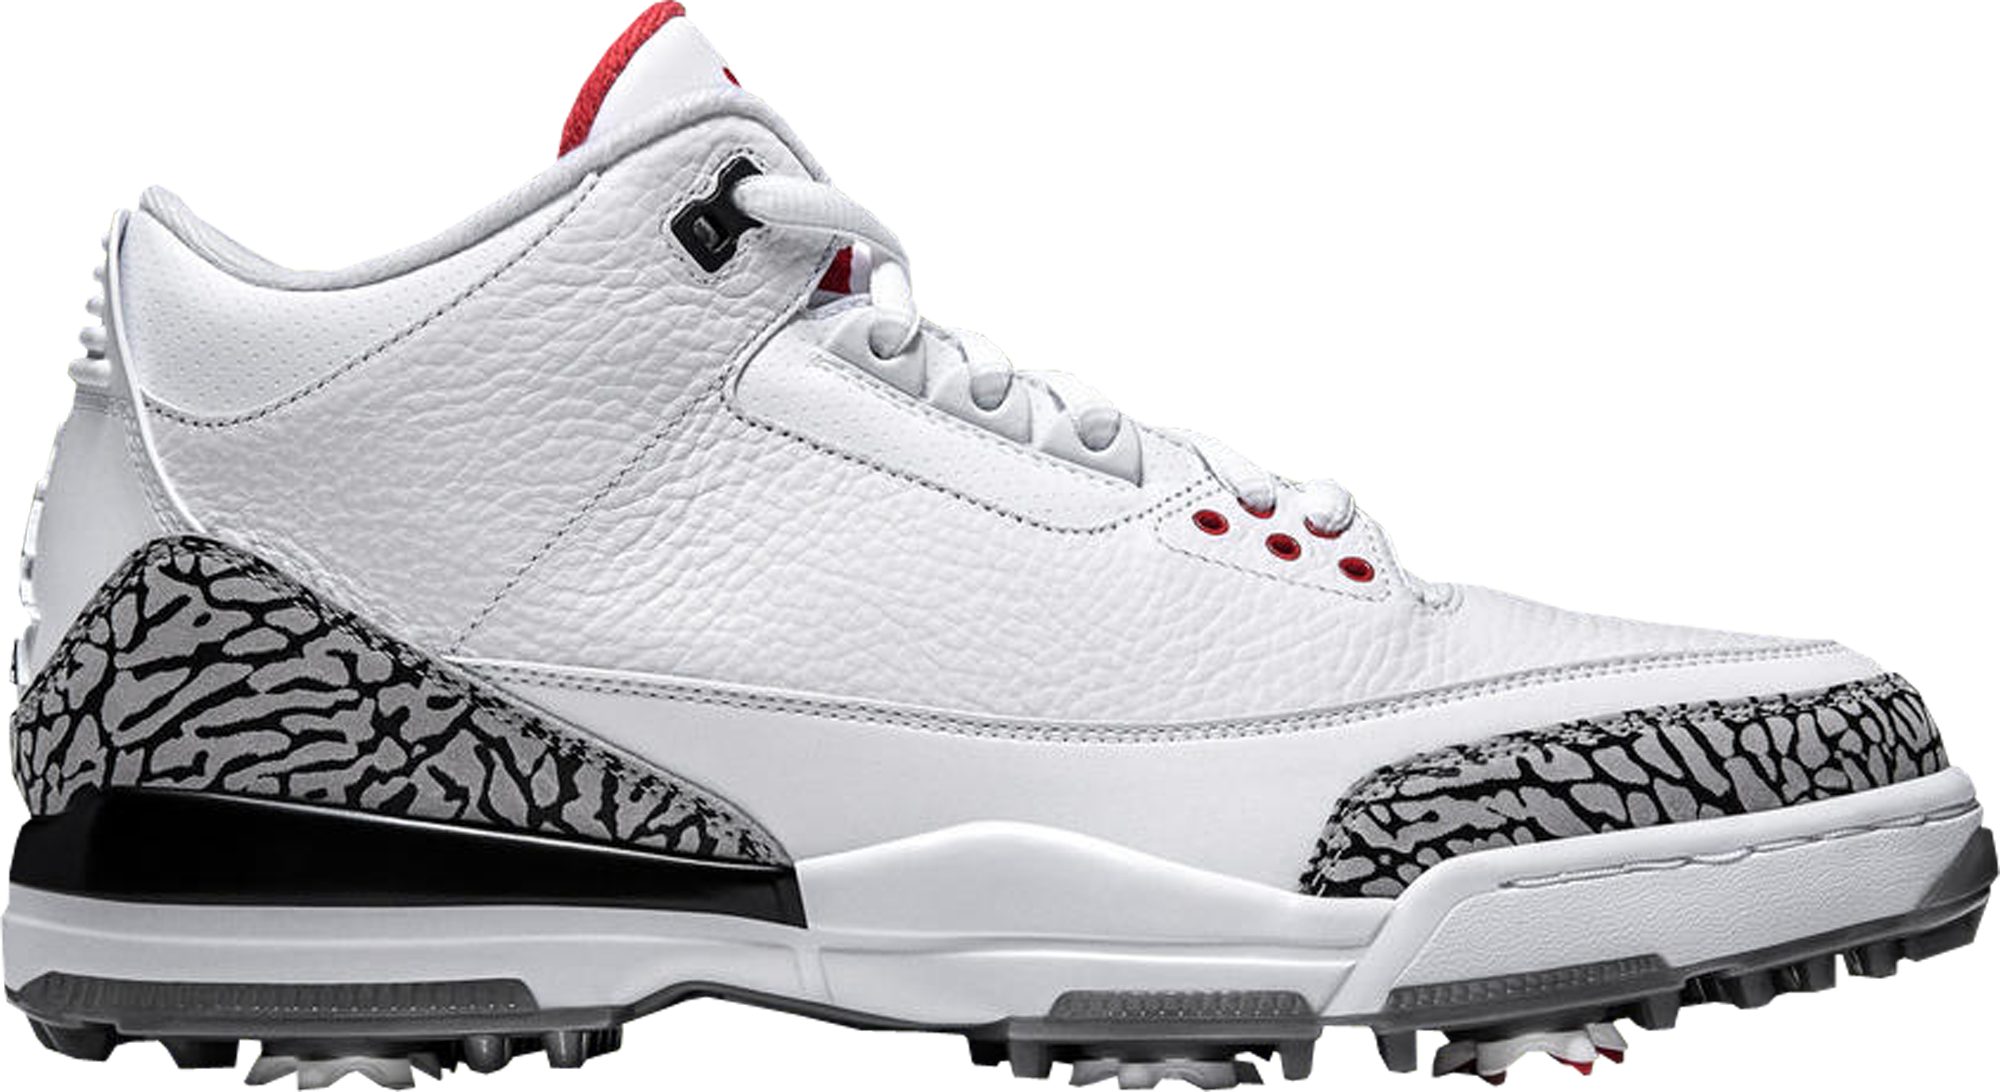 Air-Jordan-3-Retro-Golf-White-Cement.png